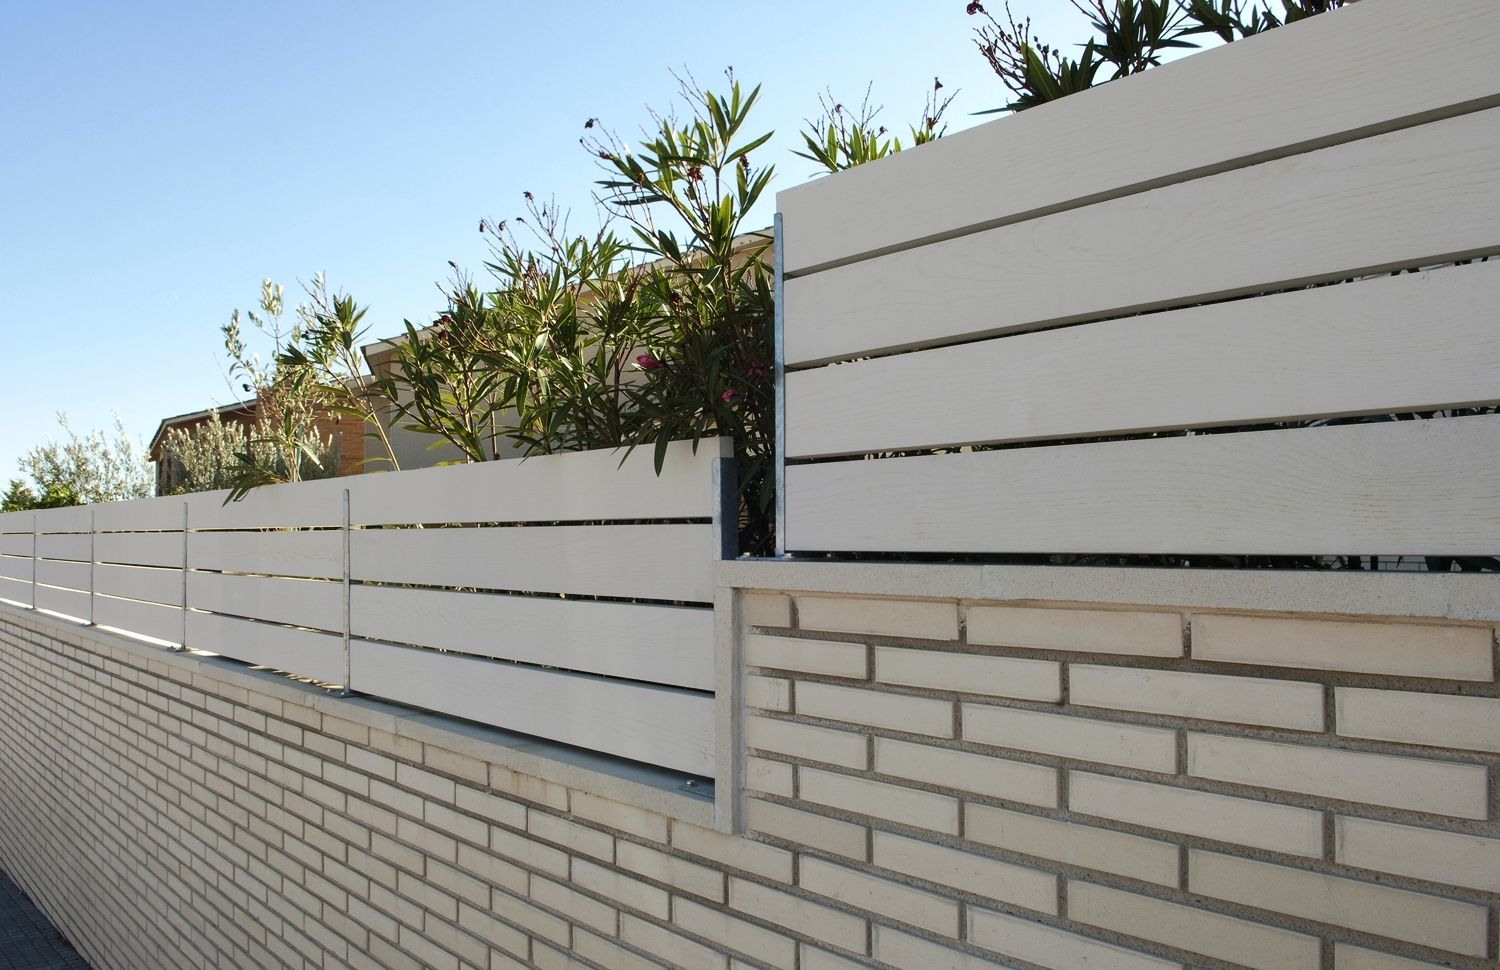 Valla para jardin home perimeter wall pinterest for Valla metalica jardin